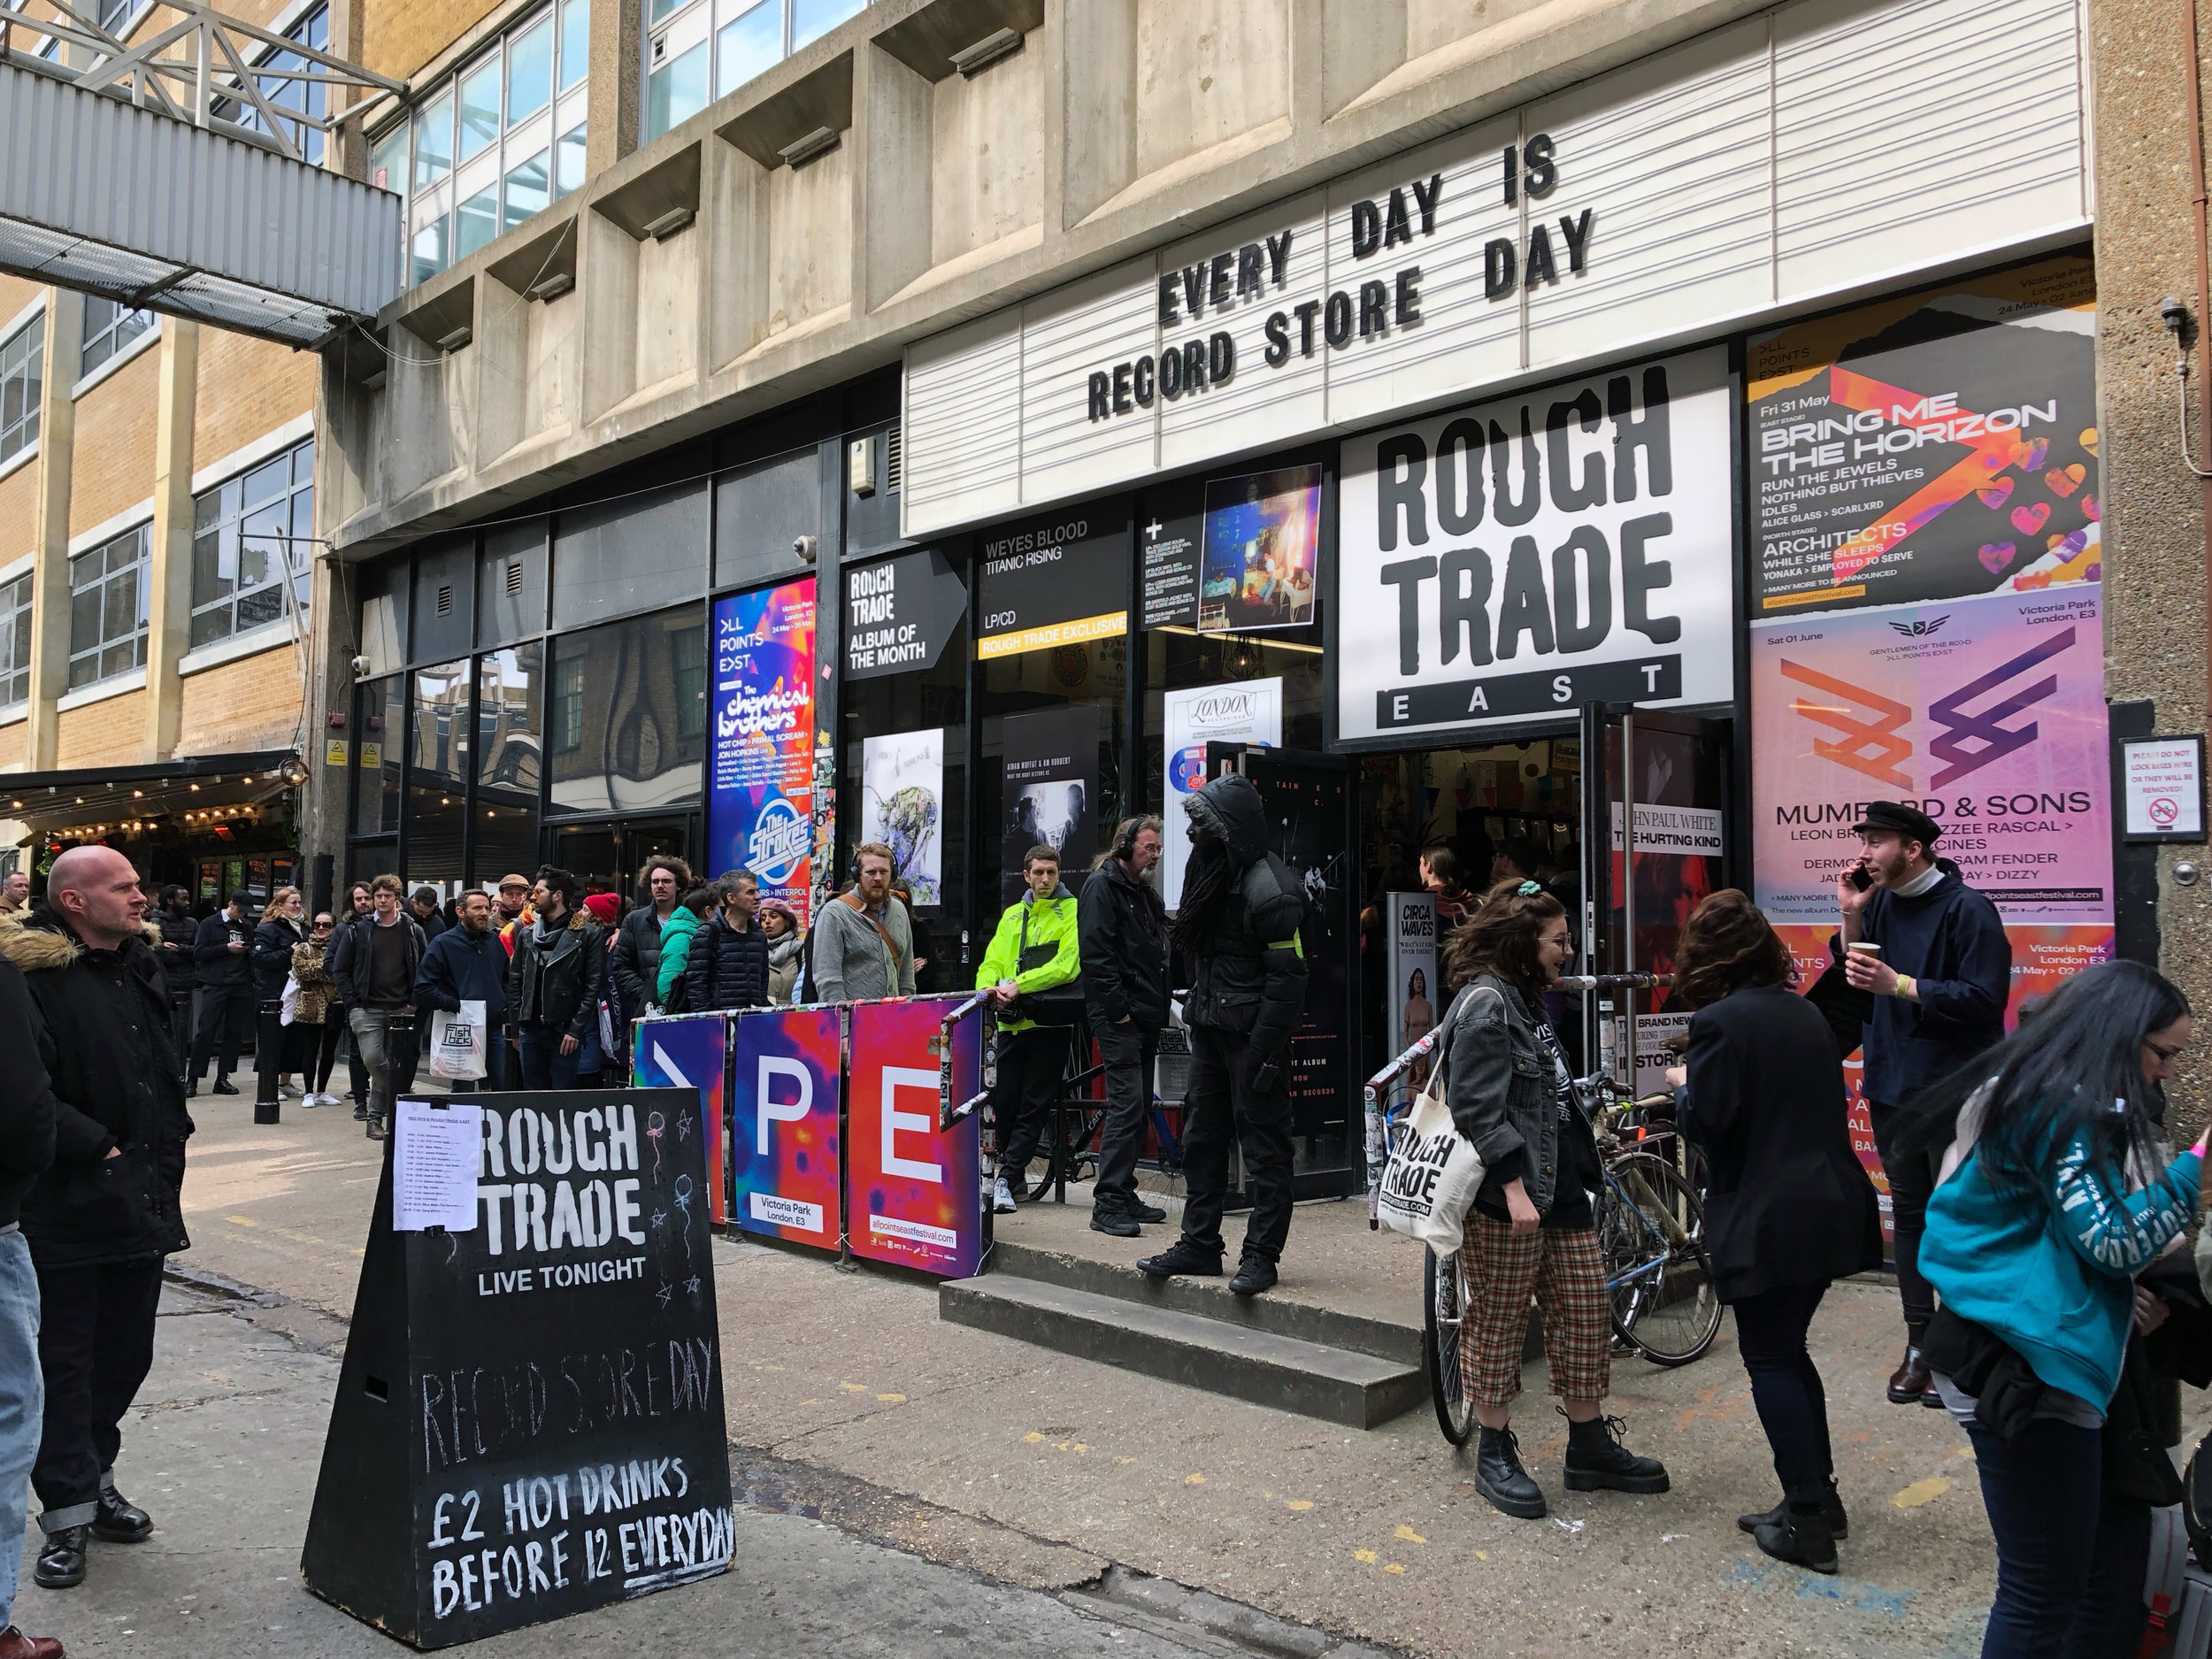 Entrance to Rough Trade East on Record Store Day 2019 - Shoreditch, London, UK.JPEG